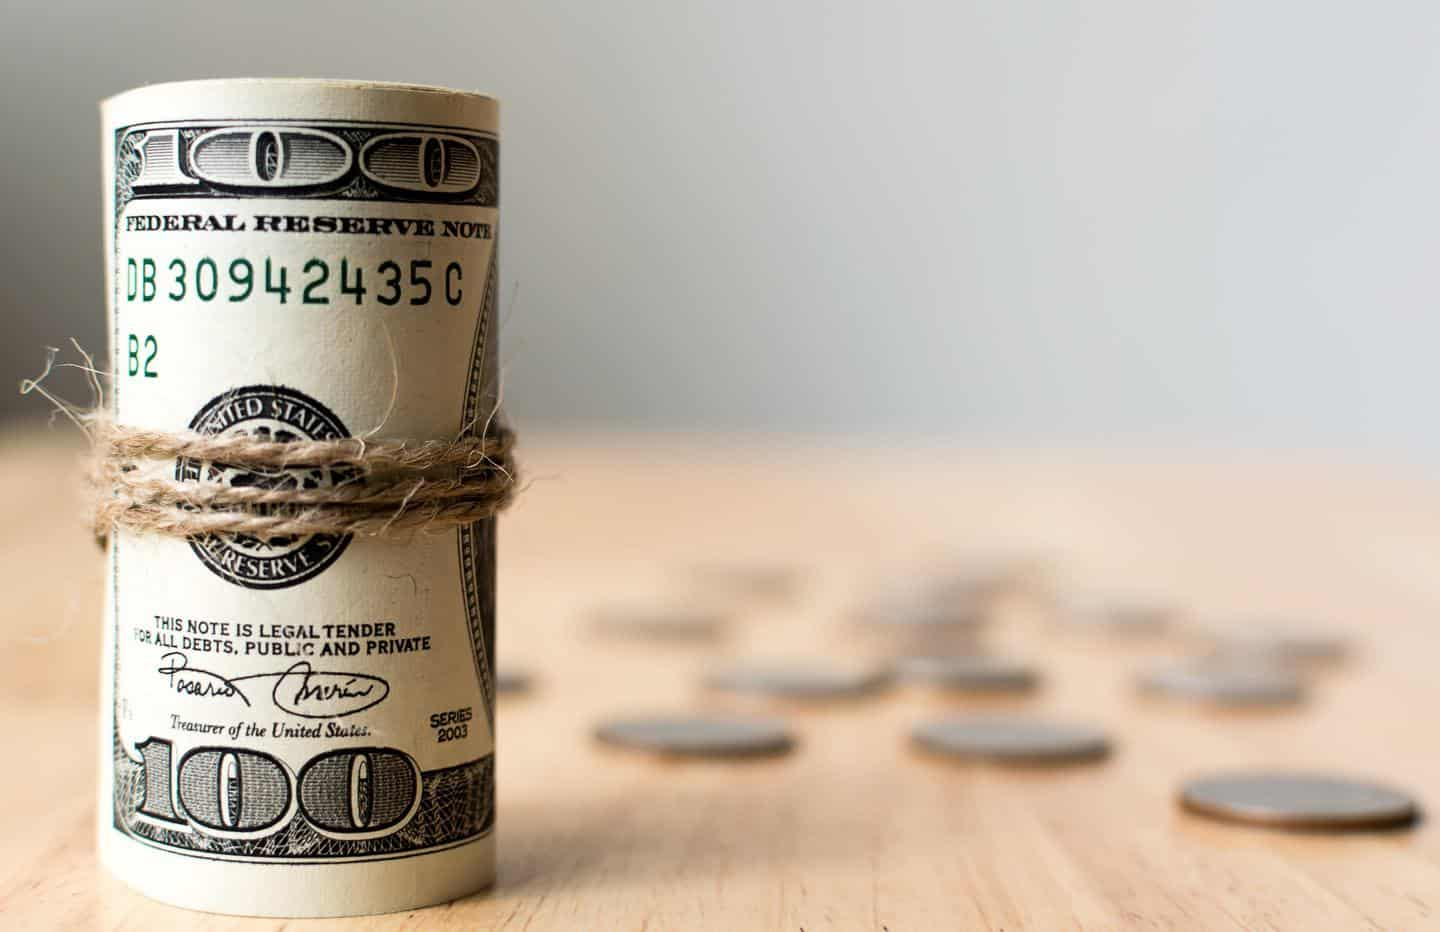 17 Legal Ways to Make $1,000 Fast (Without a Job)